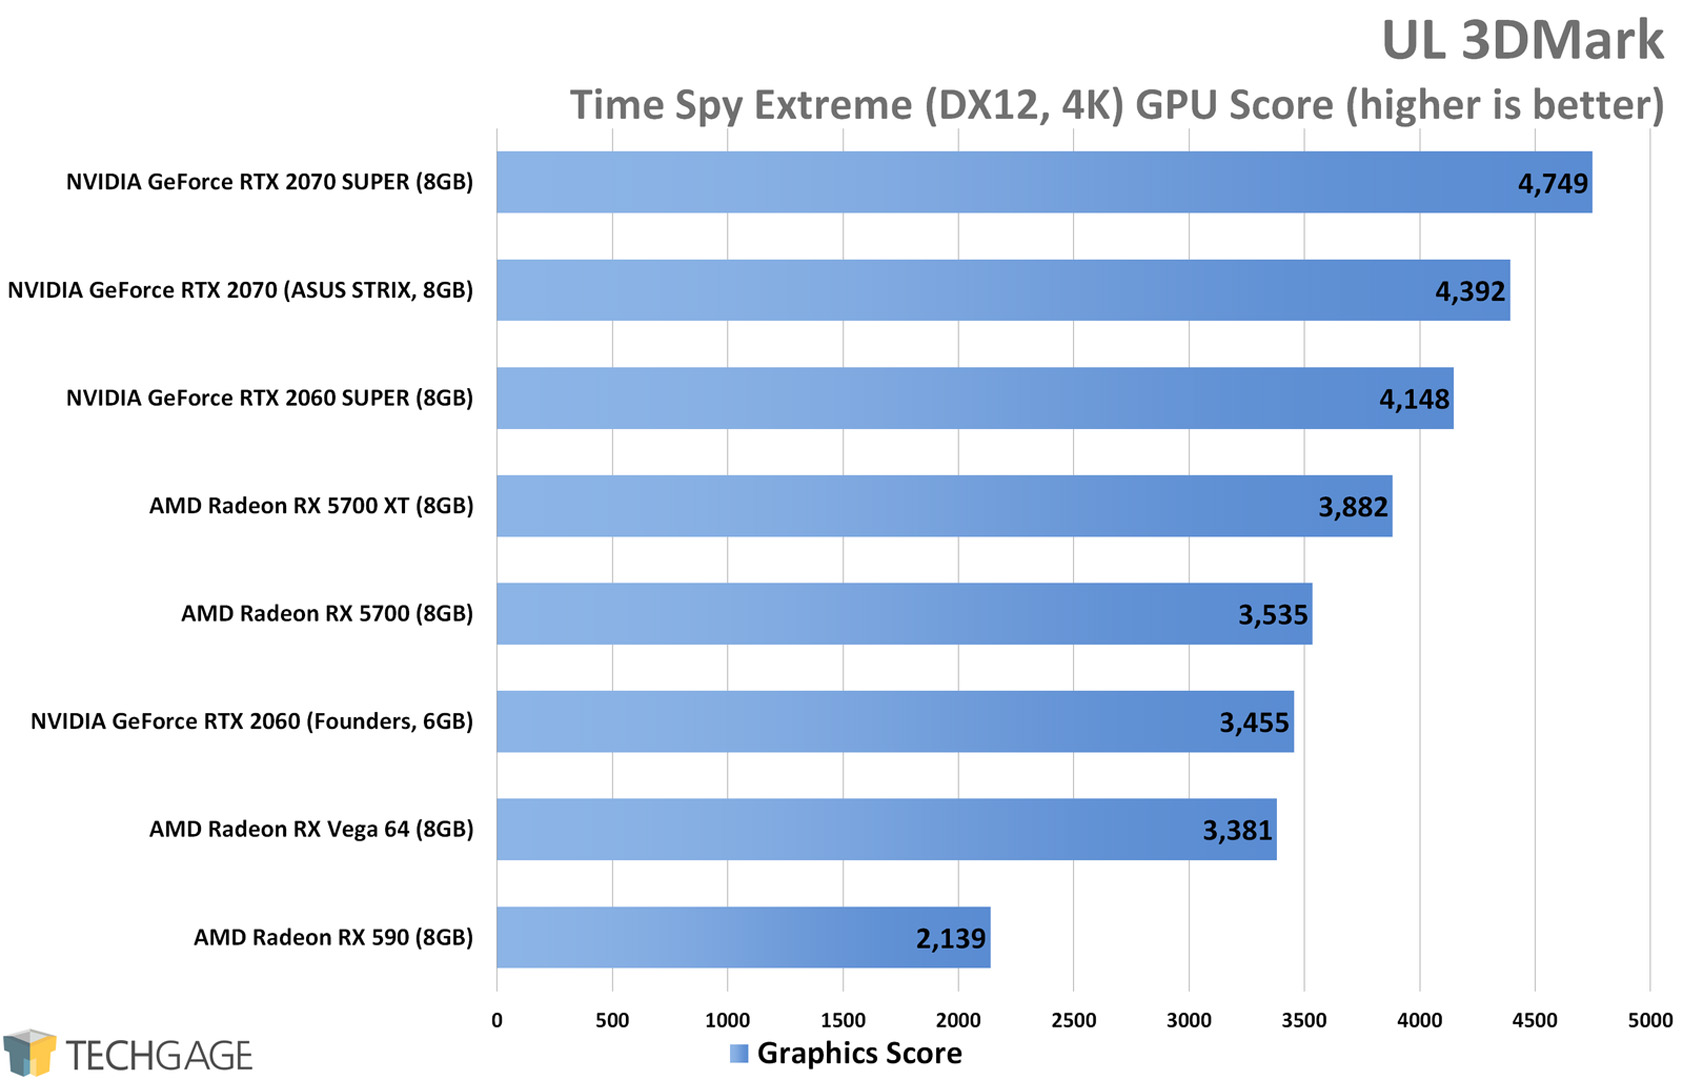 UL 3DMark Time Spy Extreme (4K) - AMD Radeon RX 5700 XT and RX 5700 Performance